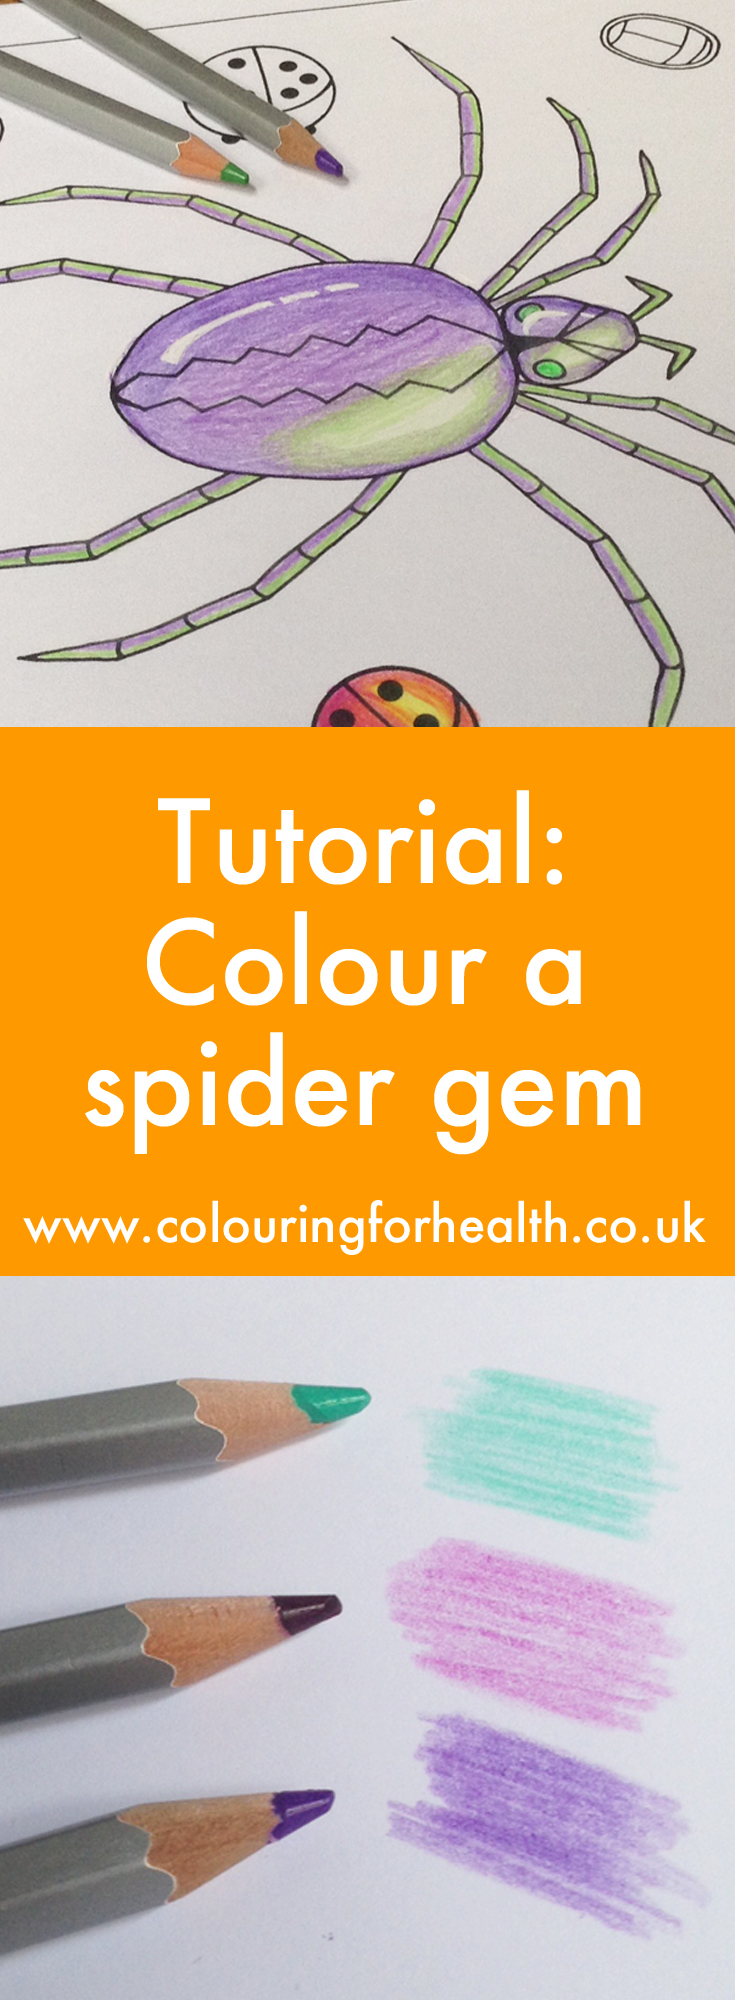 Colouring a spider gemstone Gillian Adams